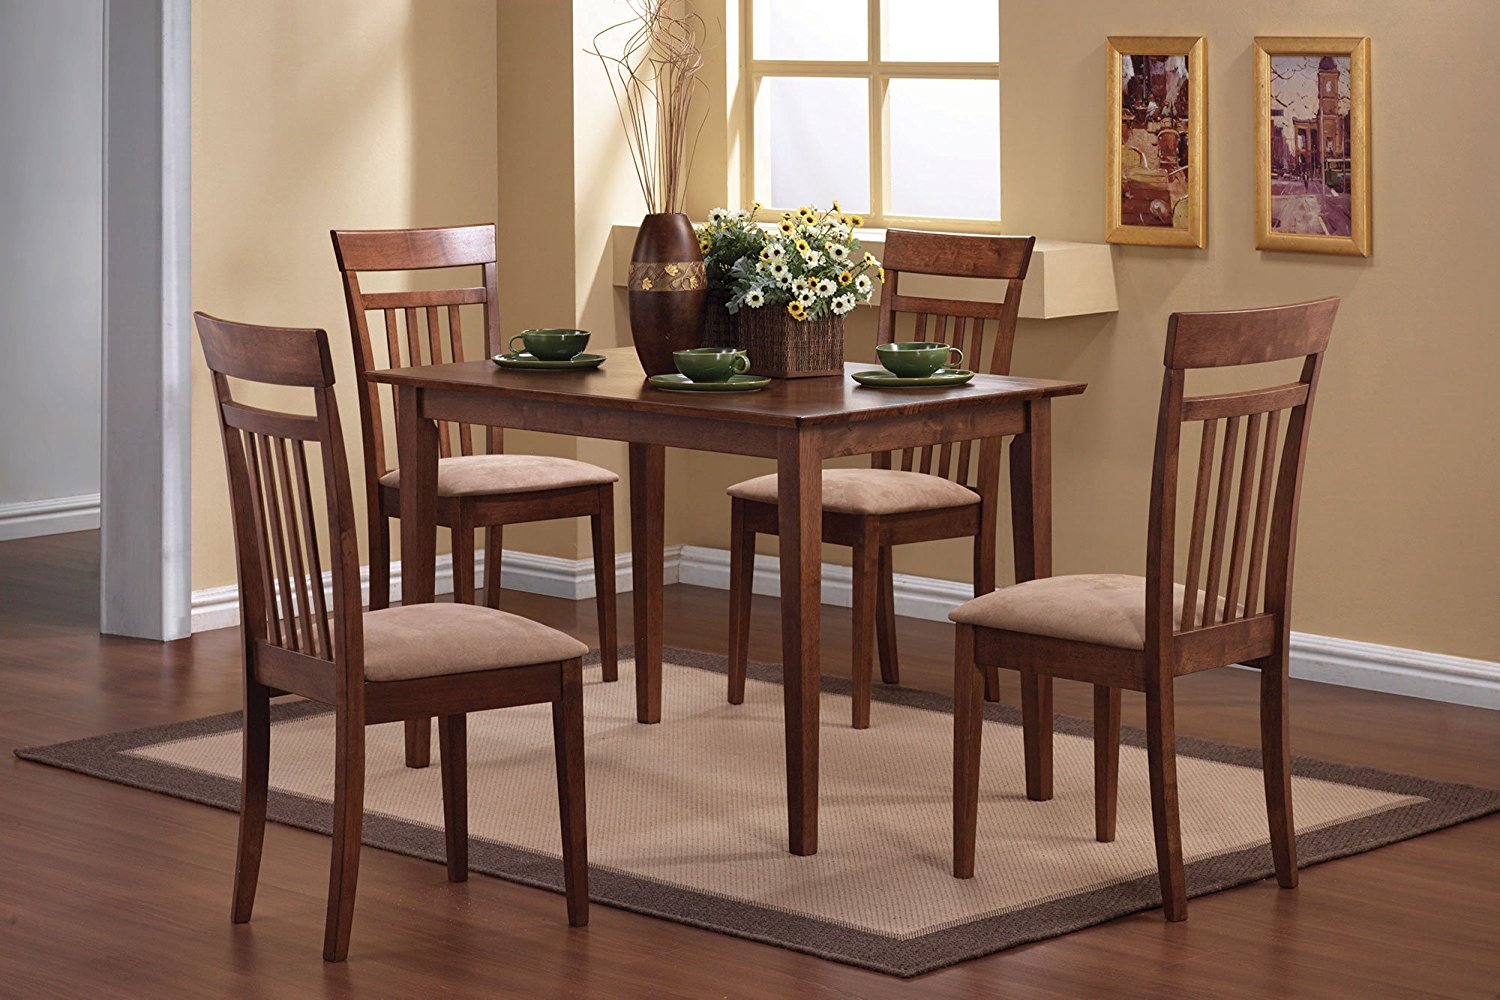 Simple Relax 1PerfectChoice 5 PC Casual Dining Set Simple Shapes Table 4 Padded Chairs Slat Back In Walnut